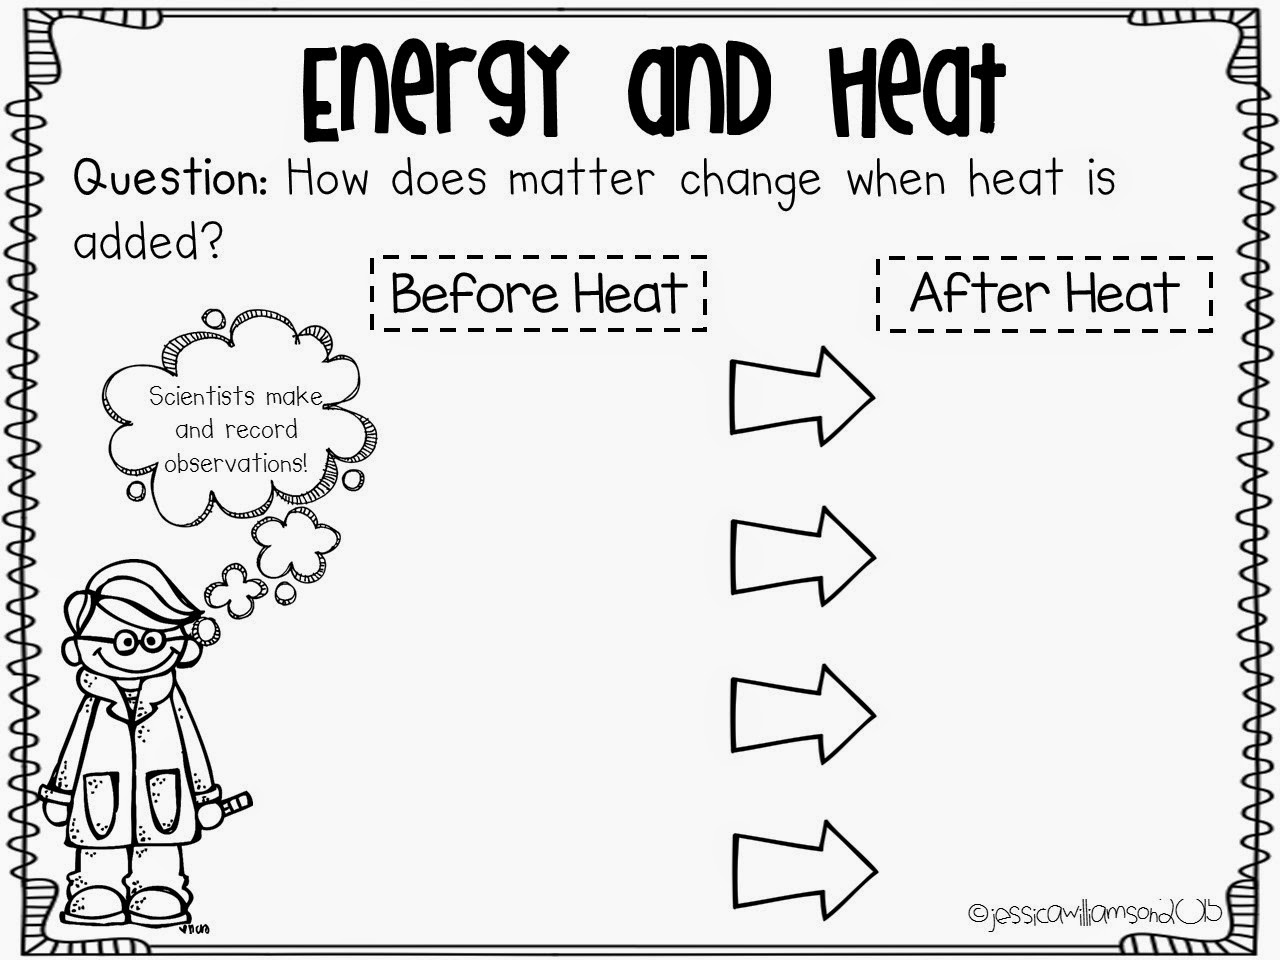 Worksheet Light Energy Worksheets For Kids heat energy worksheets free library download and have fun teaching